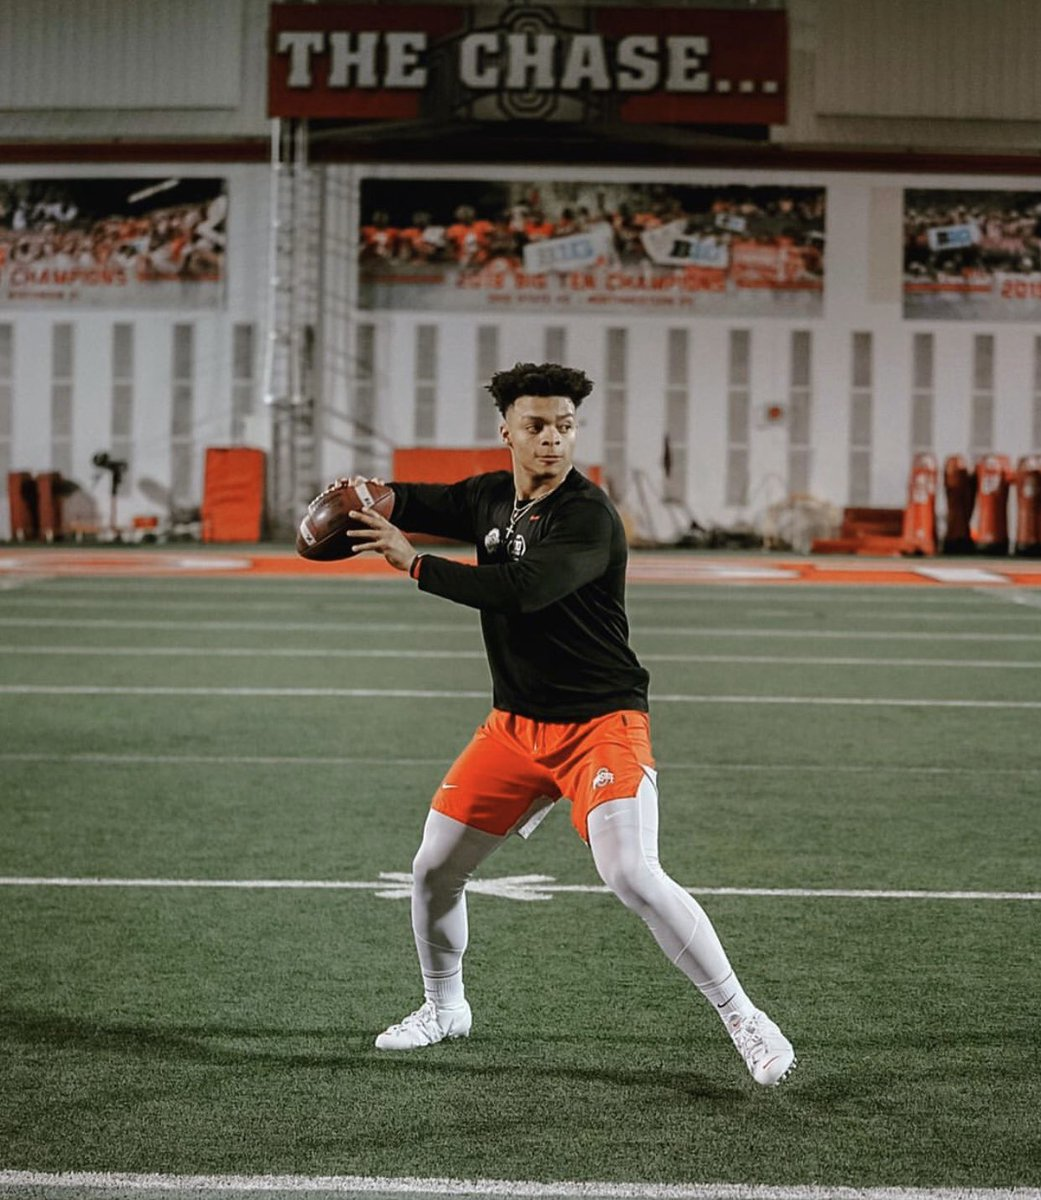 Justin Fields On Twitter The Chase Continues Required fields are marked *. justin fields on twitter the chase